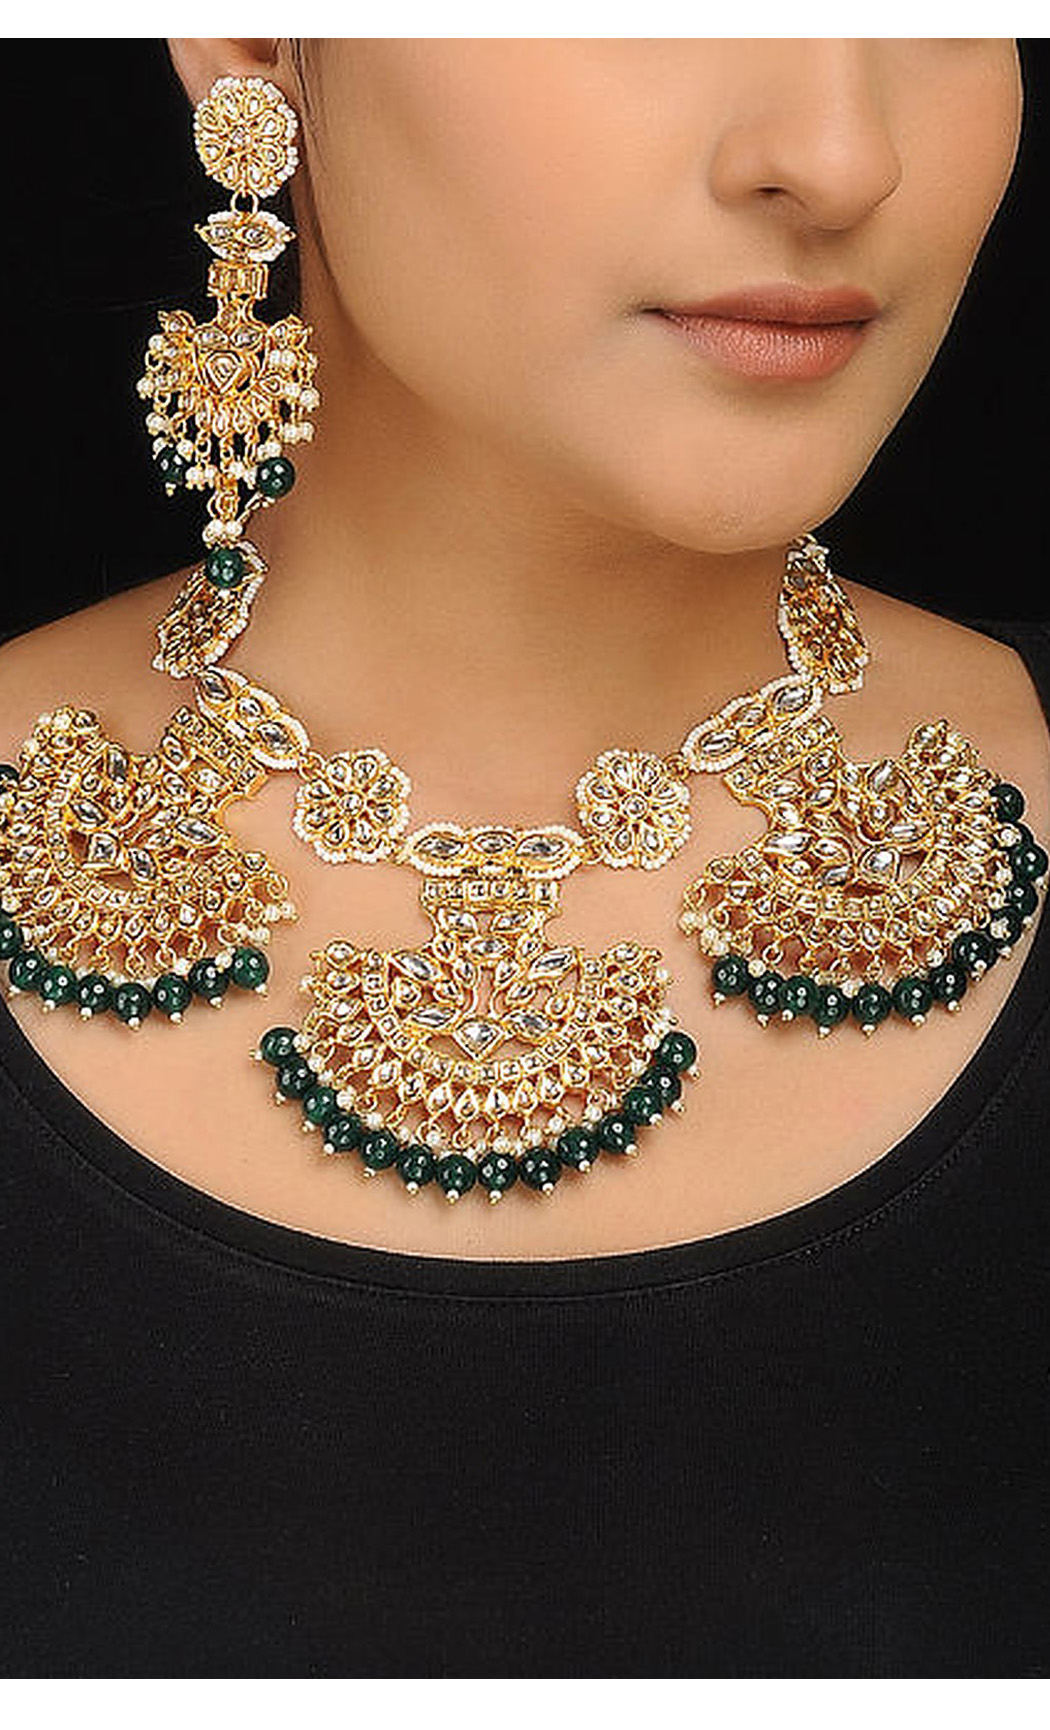 Gold and Green Kundan with Pearl Beaded Necklace Set. Buy Online